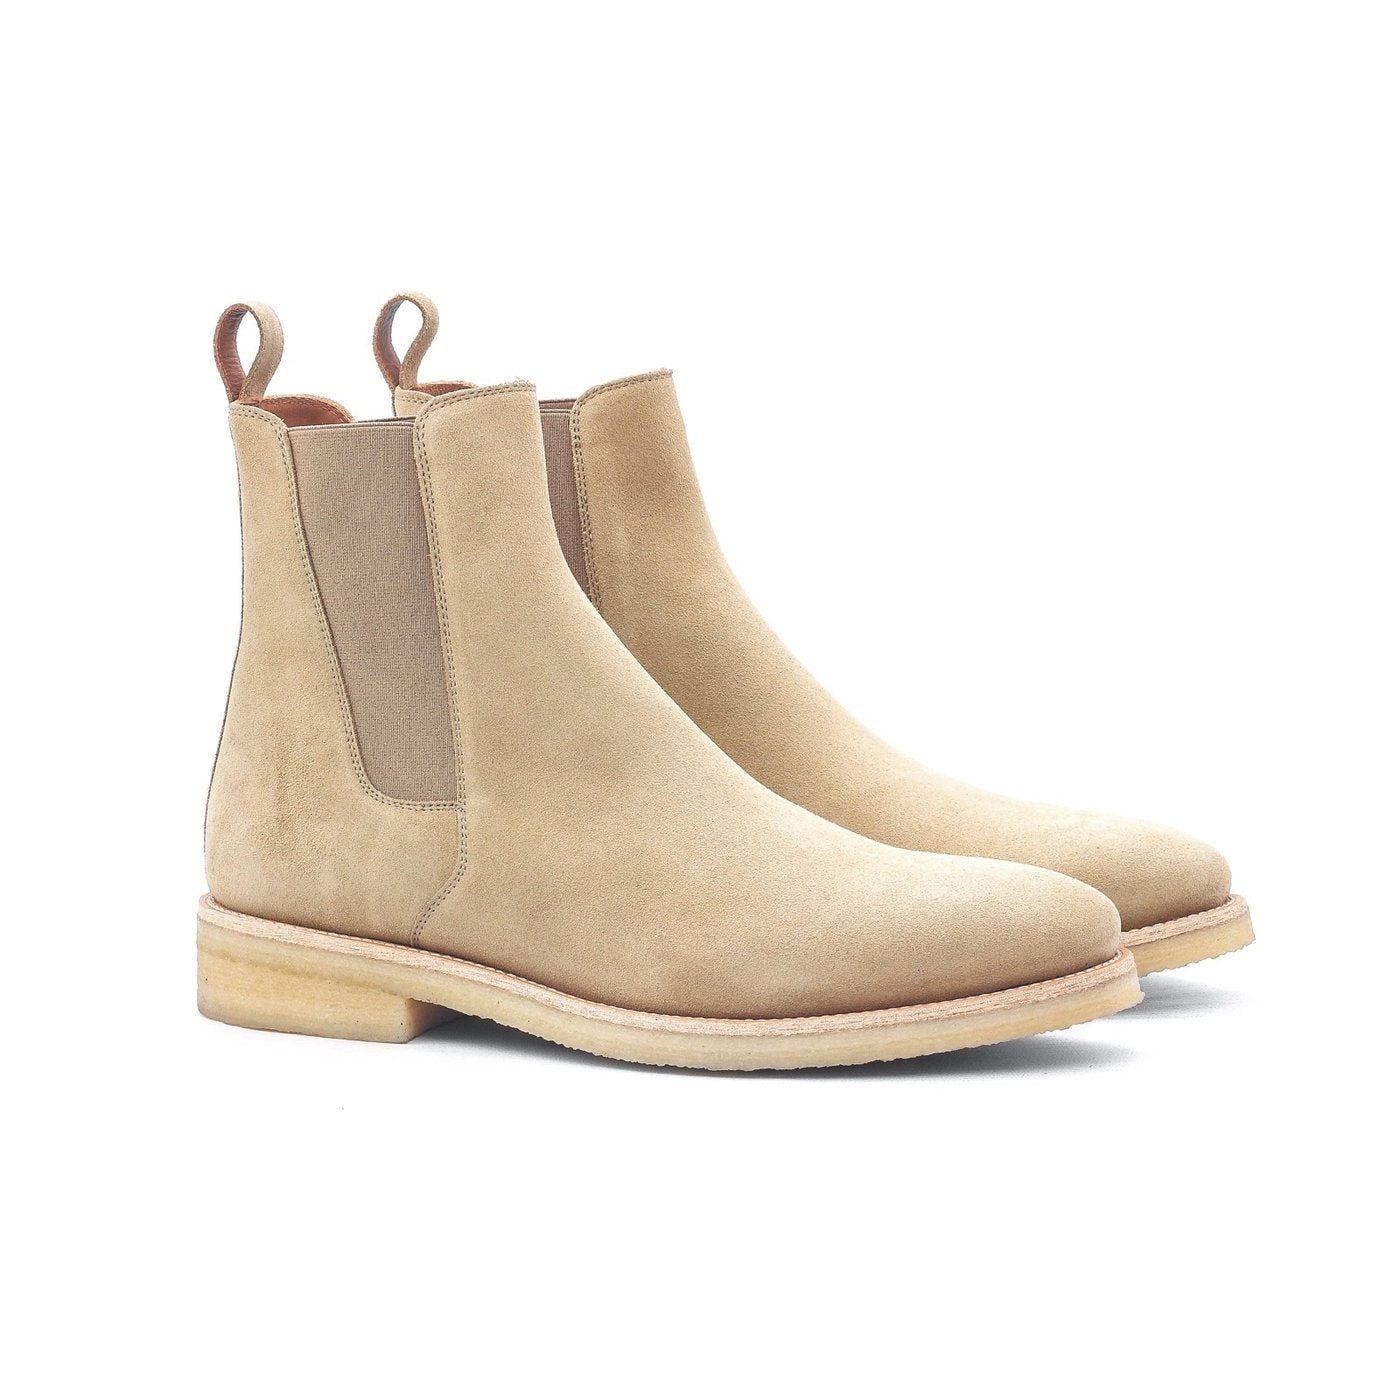 THE ALICANTE CREPE CHELSEA BOOTS